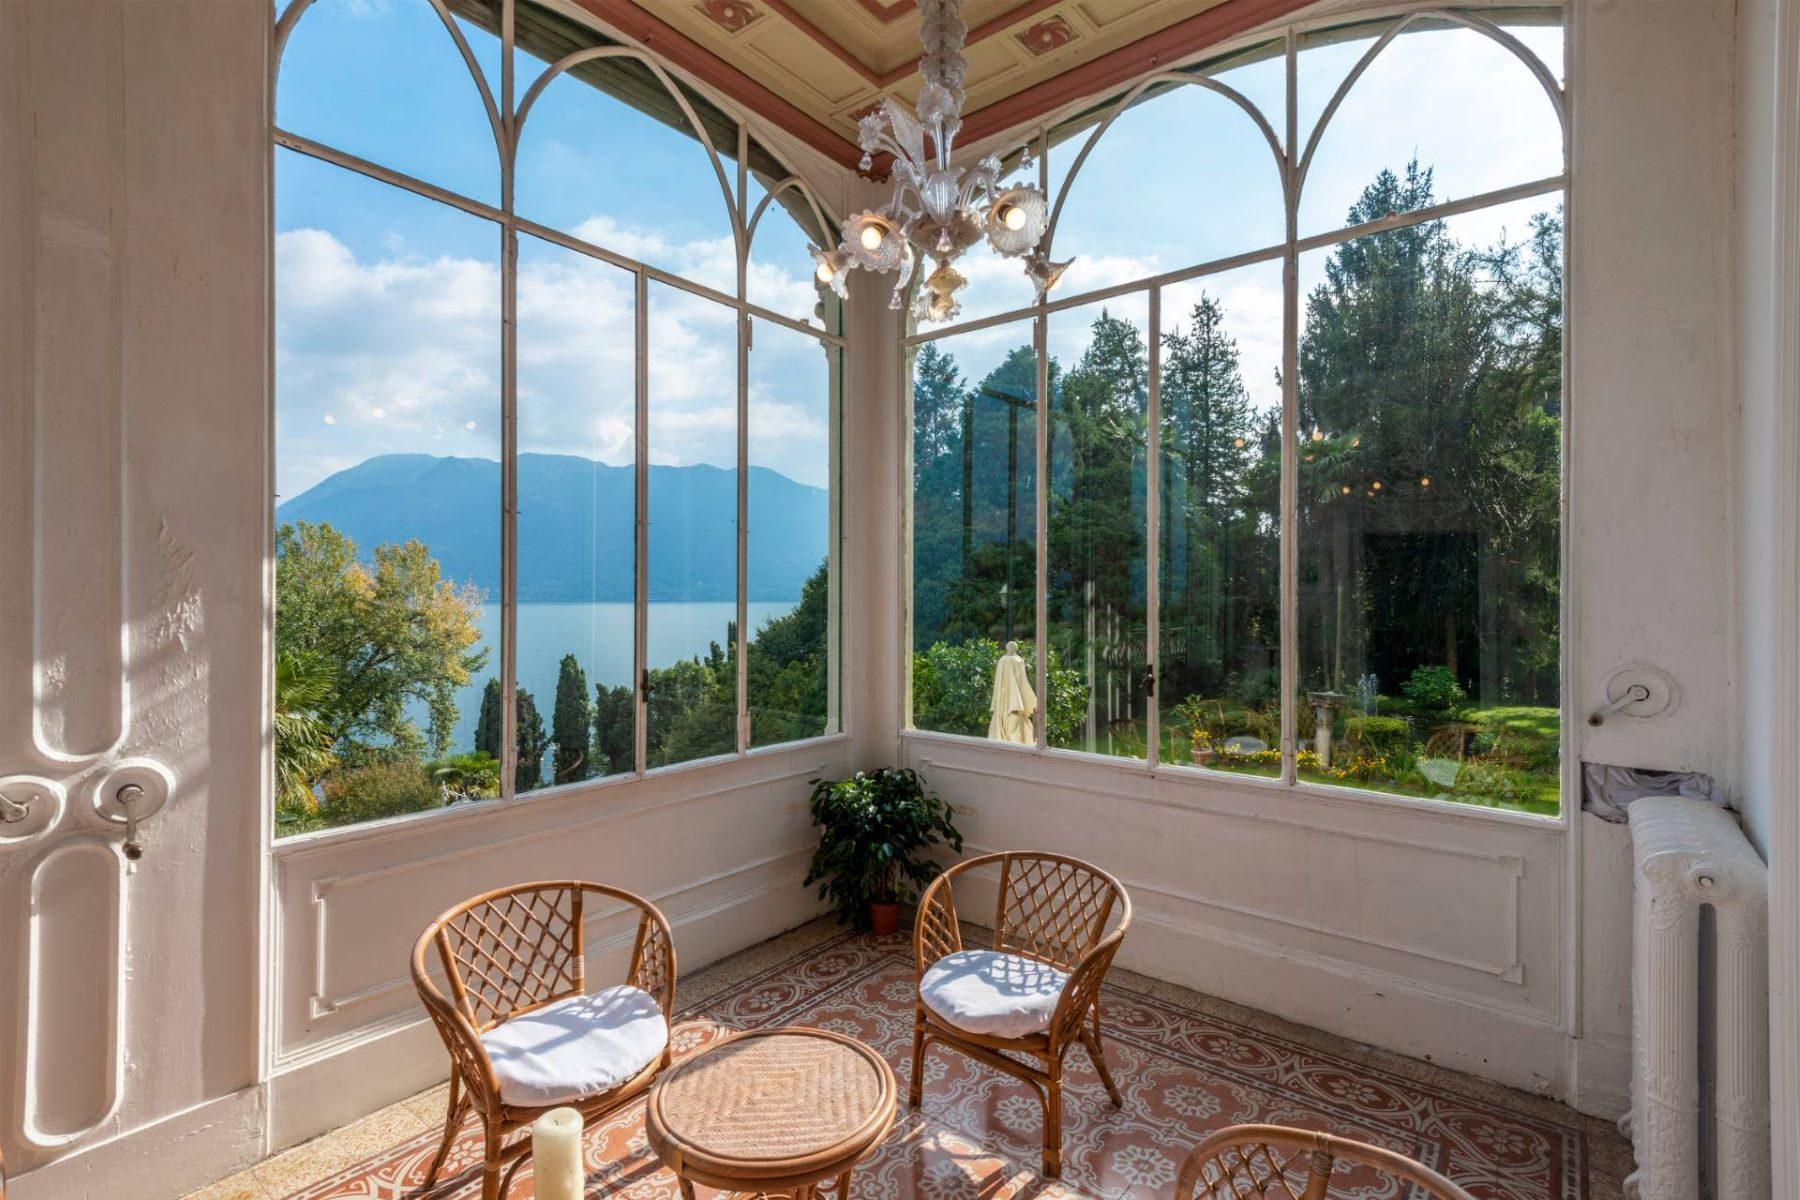 Other Residential Homes for Sale at Villa Volpi in Art Nouveau style with a giant park Ghiffa, Verbano Cusio Ossola Italy